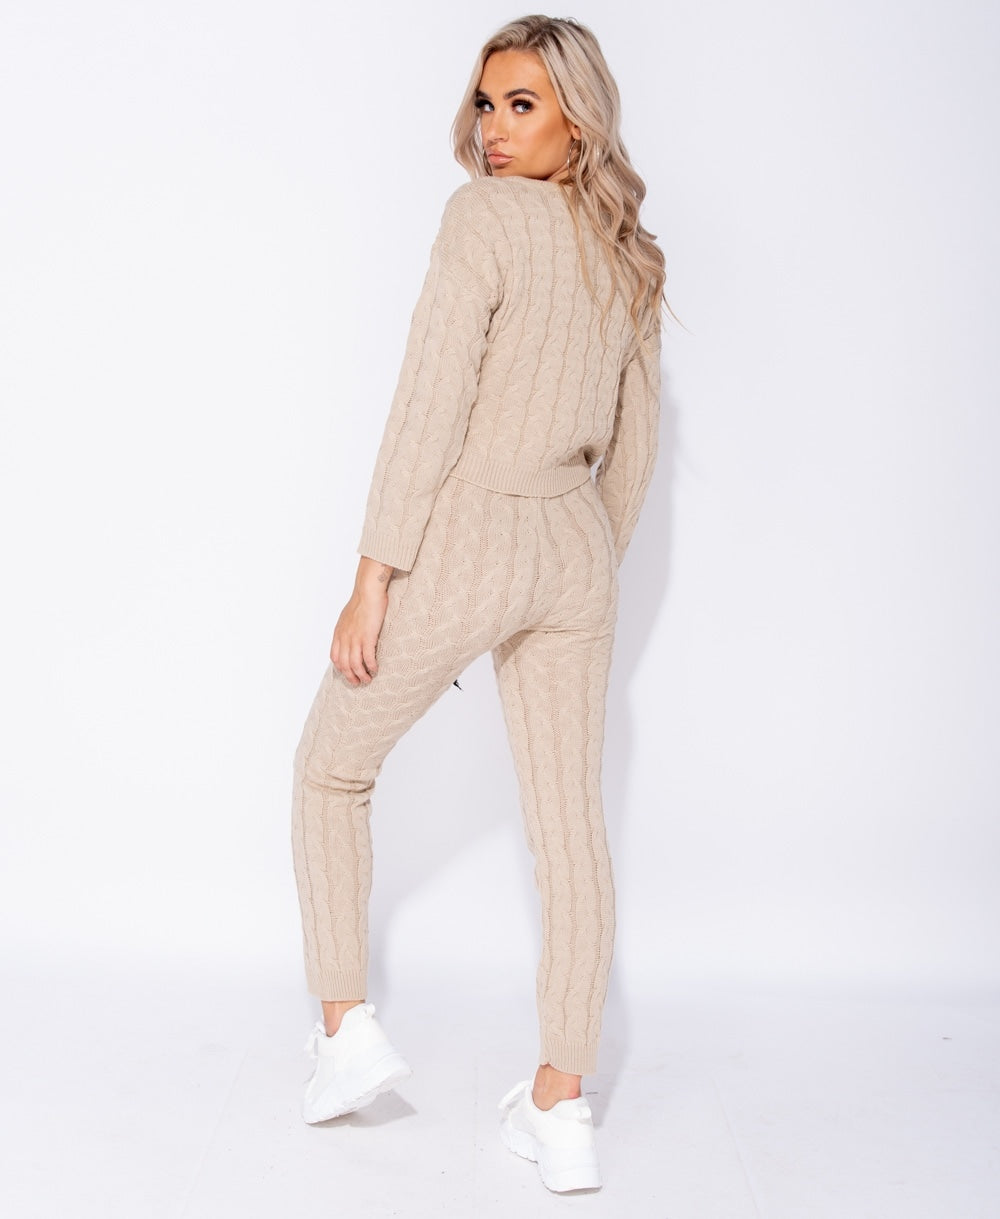 Beige Cable Knit Long Sleeve Cropped Top & Legging Lounge Set by uniquely-sophias